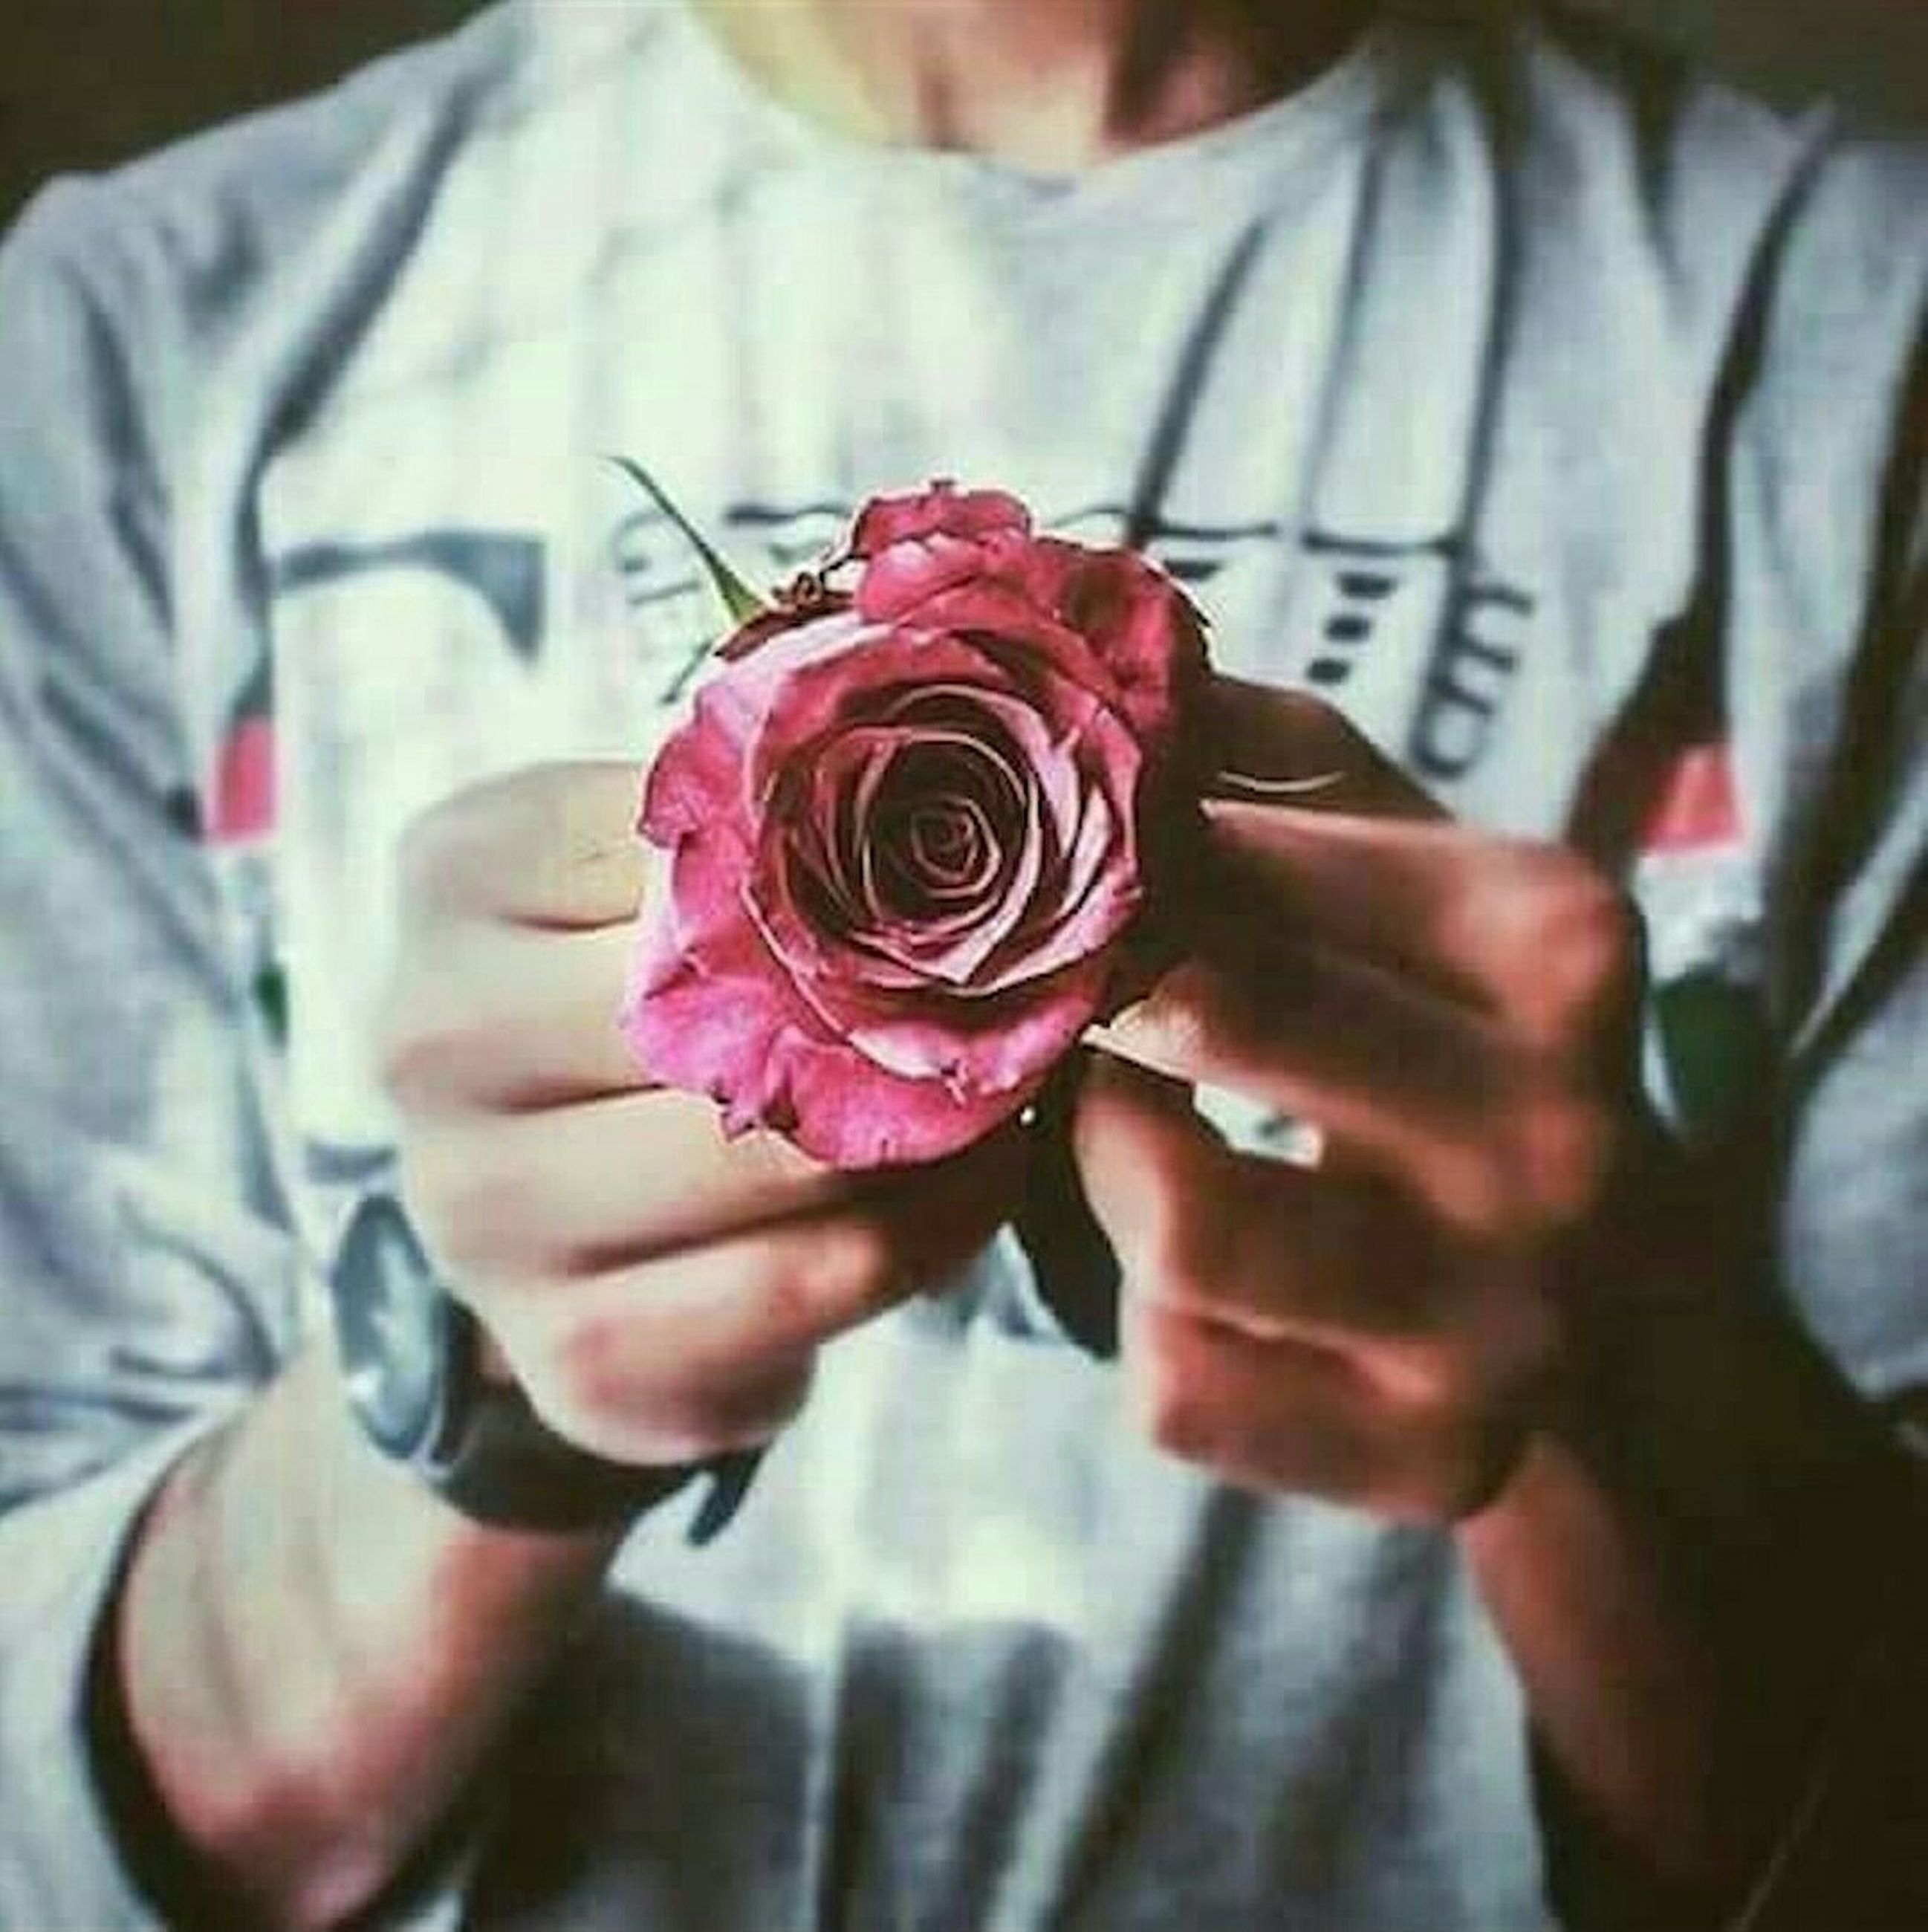 person, holding, indoors, lifestyles, flower, pink color, part of, focus on foreground, midsection, leisure activity, close-up, men, cropped, human finger, love